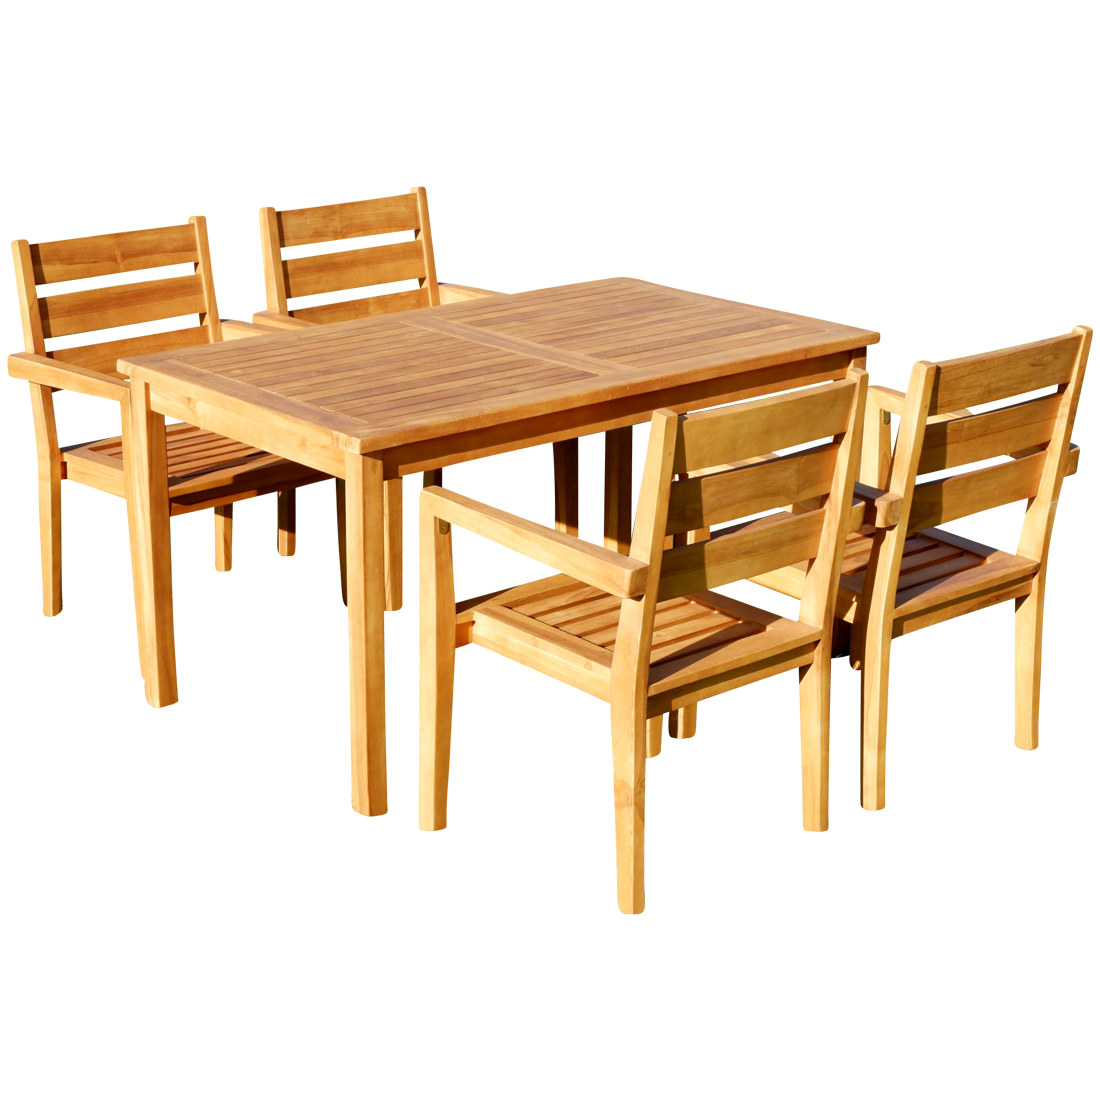 Teak Sessel Teak Set Gartengarnitur Alpen Tisch 150x80 4 Kingston Sessel Serie Jav